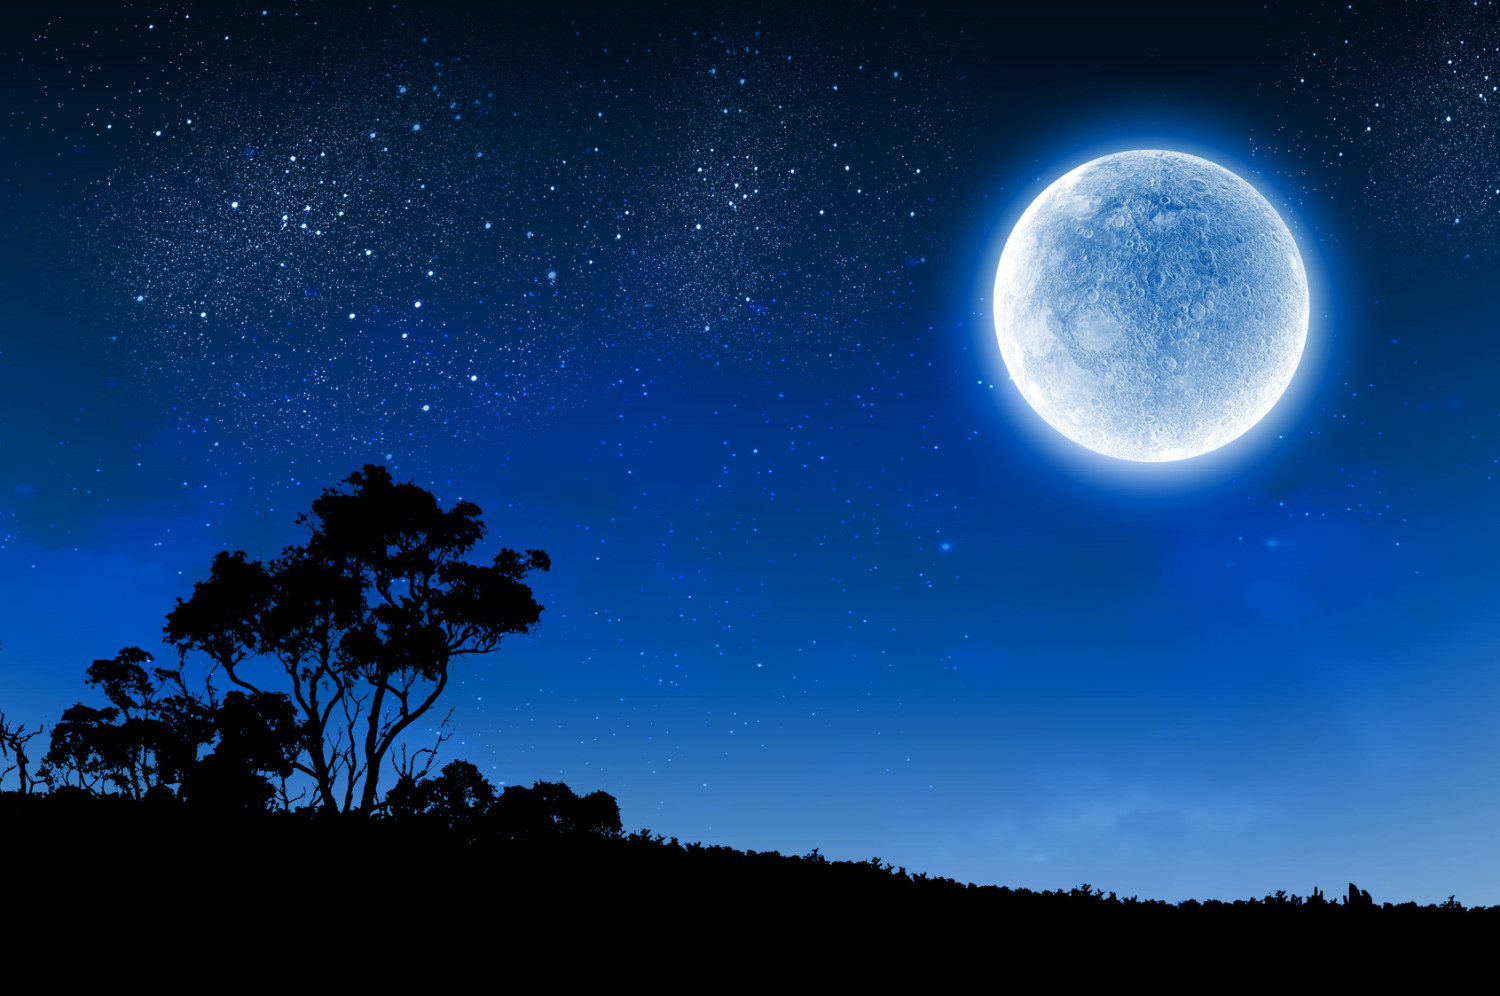 """Blue Moon Note that due to the 29-day lunar cycle the exact dates of the full moon move every year. Most seasons have three full moons, but because of the variation some seasons have four full moons. The term """"blue moon"""" was used to identify one of these extra full moons. A mistaken definition in the March 1946 edition of Sky and Telescope magazine claimed the blue moon fell on the second full moon of the calendar month. This mistake caused widespread misunderstanding until it was finally corrected in 1999."""